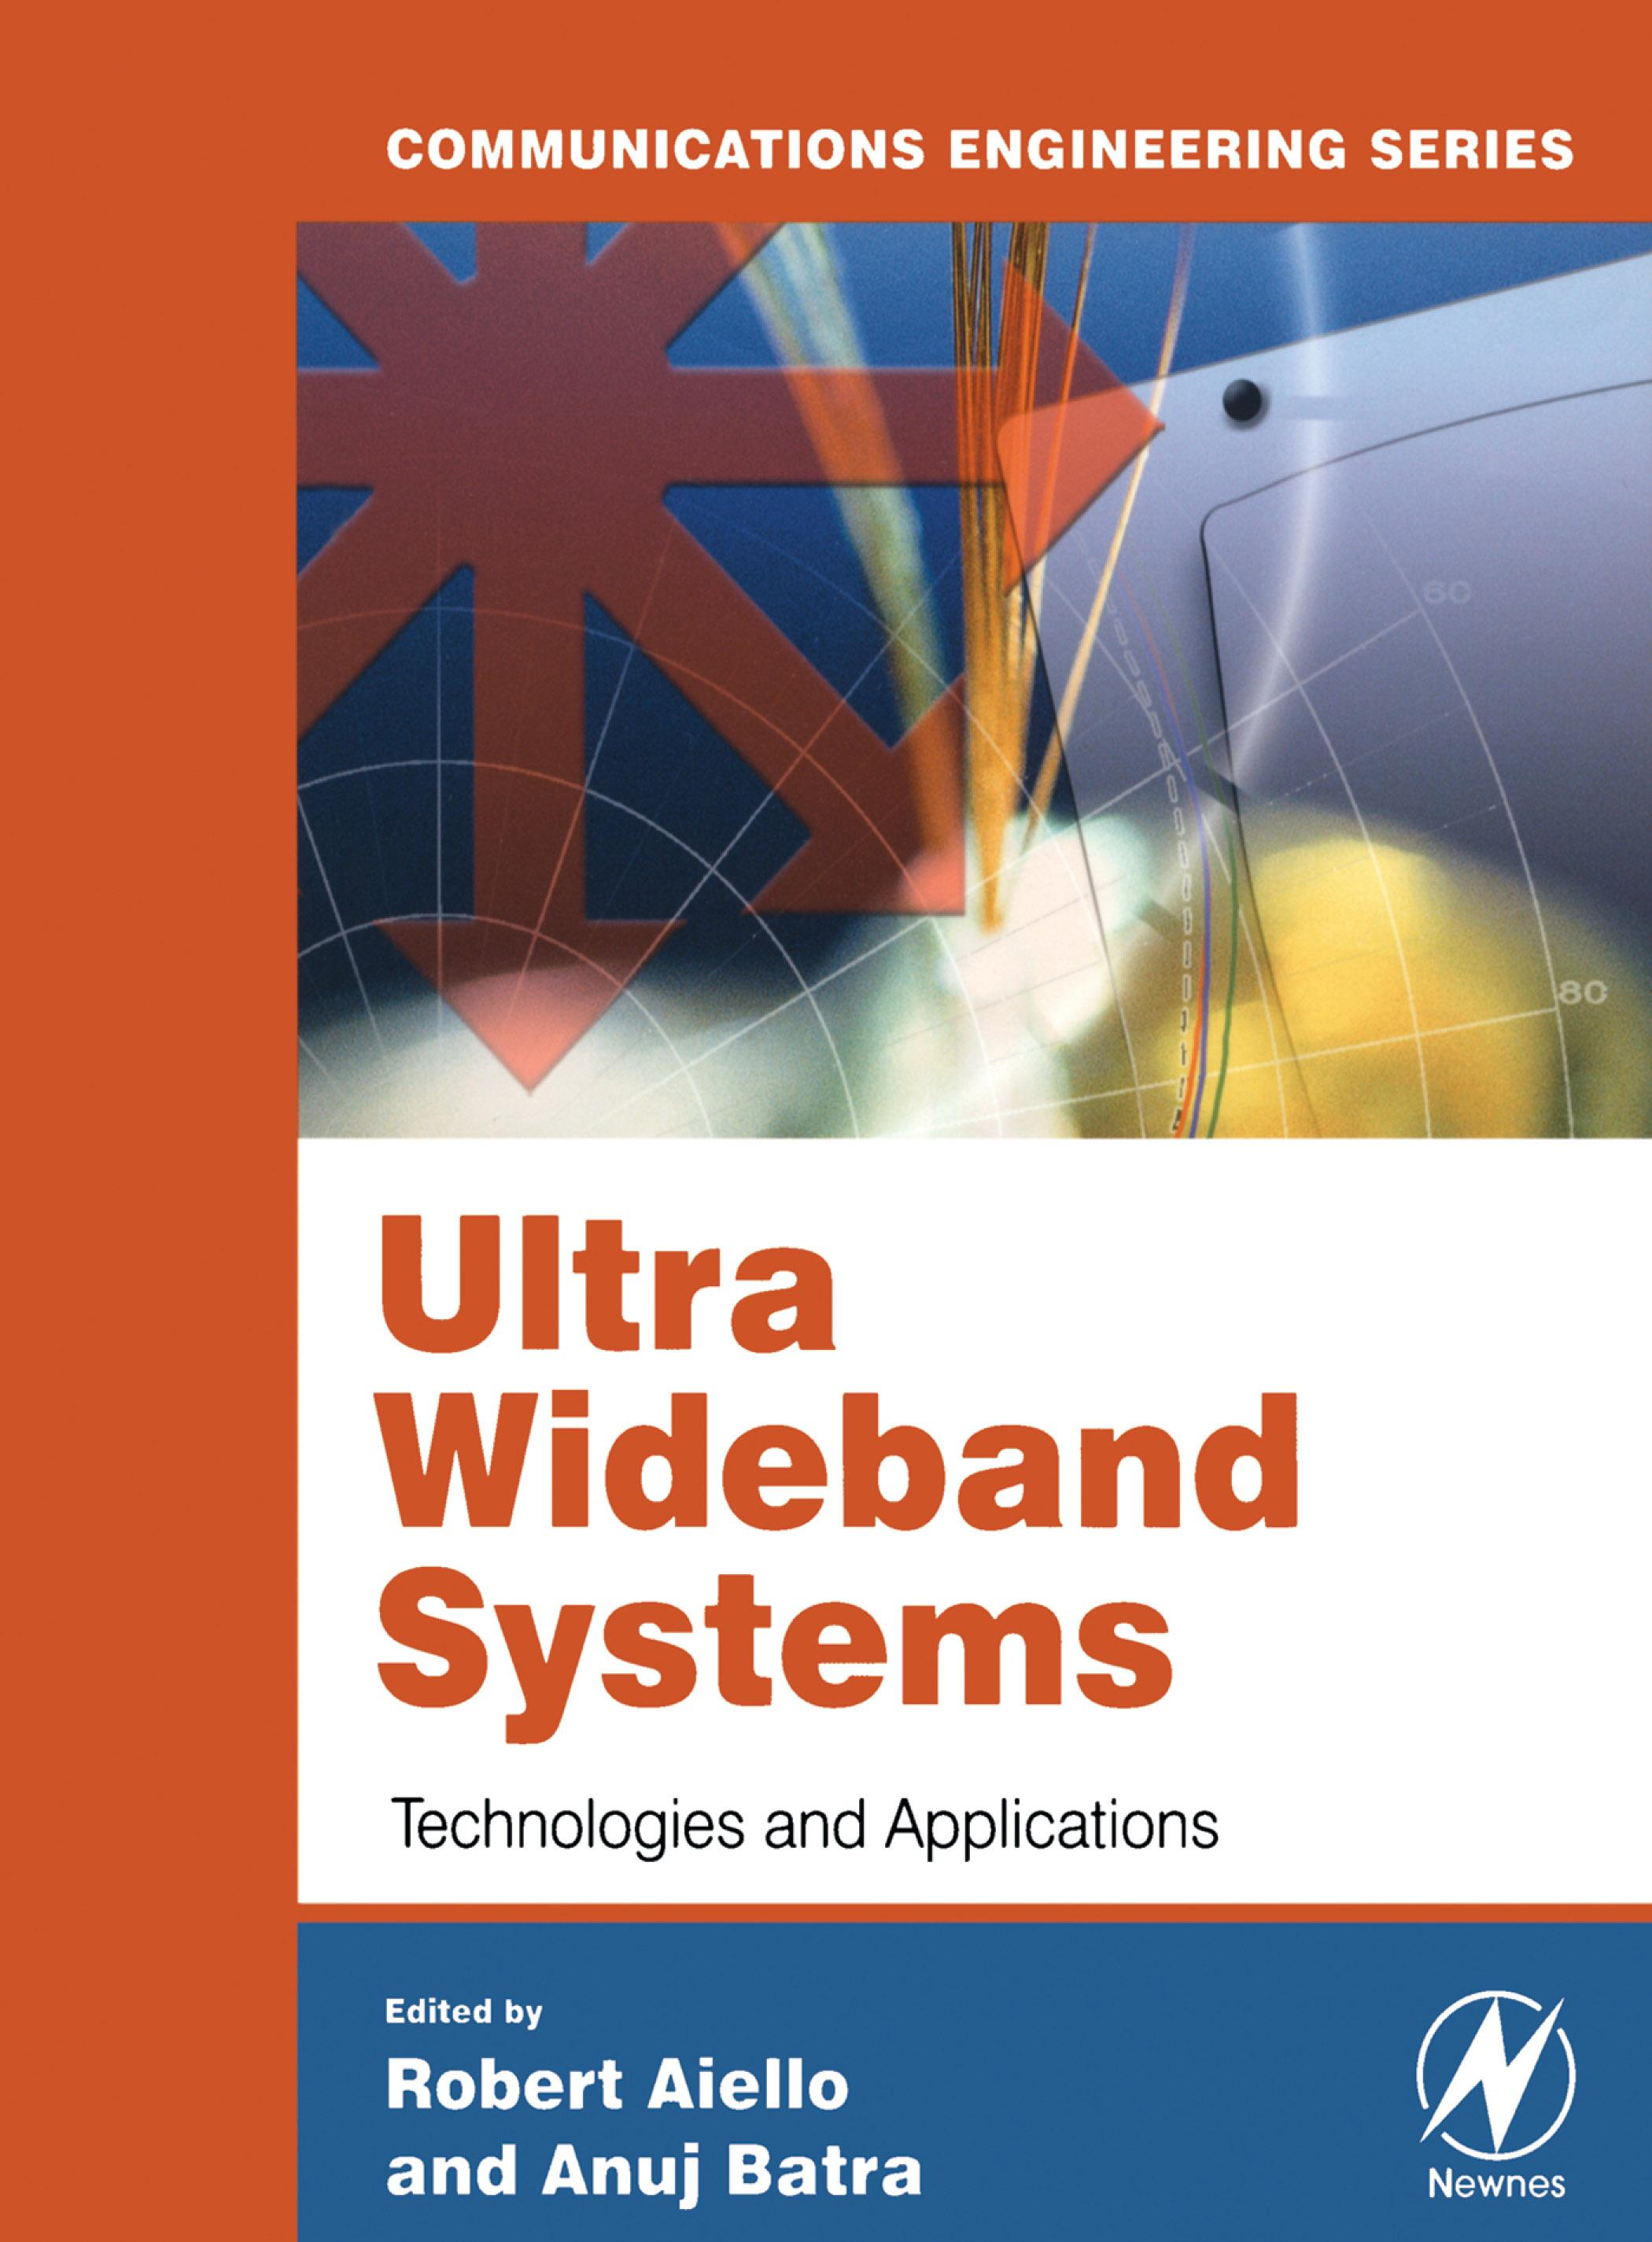 Ultra Wideband Systems: Technologies and Applications